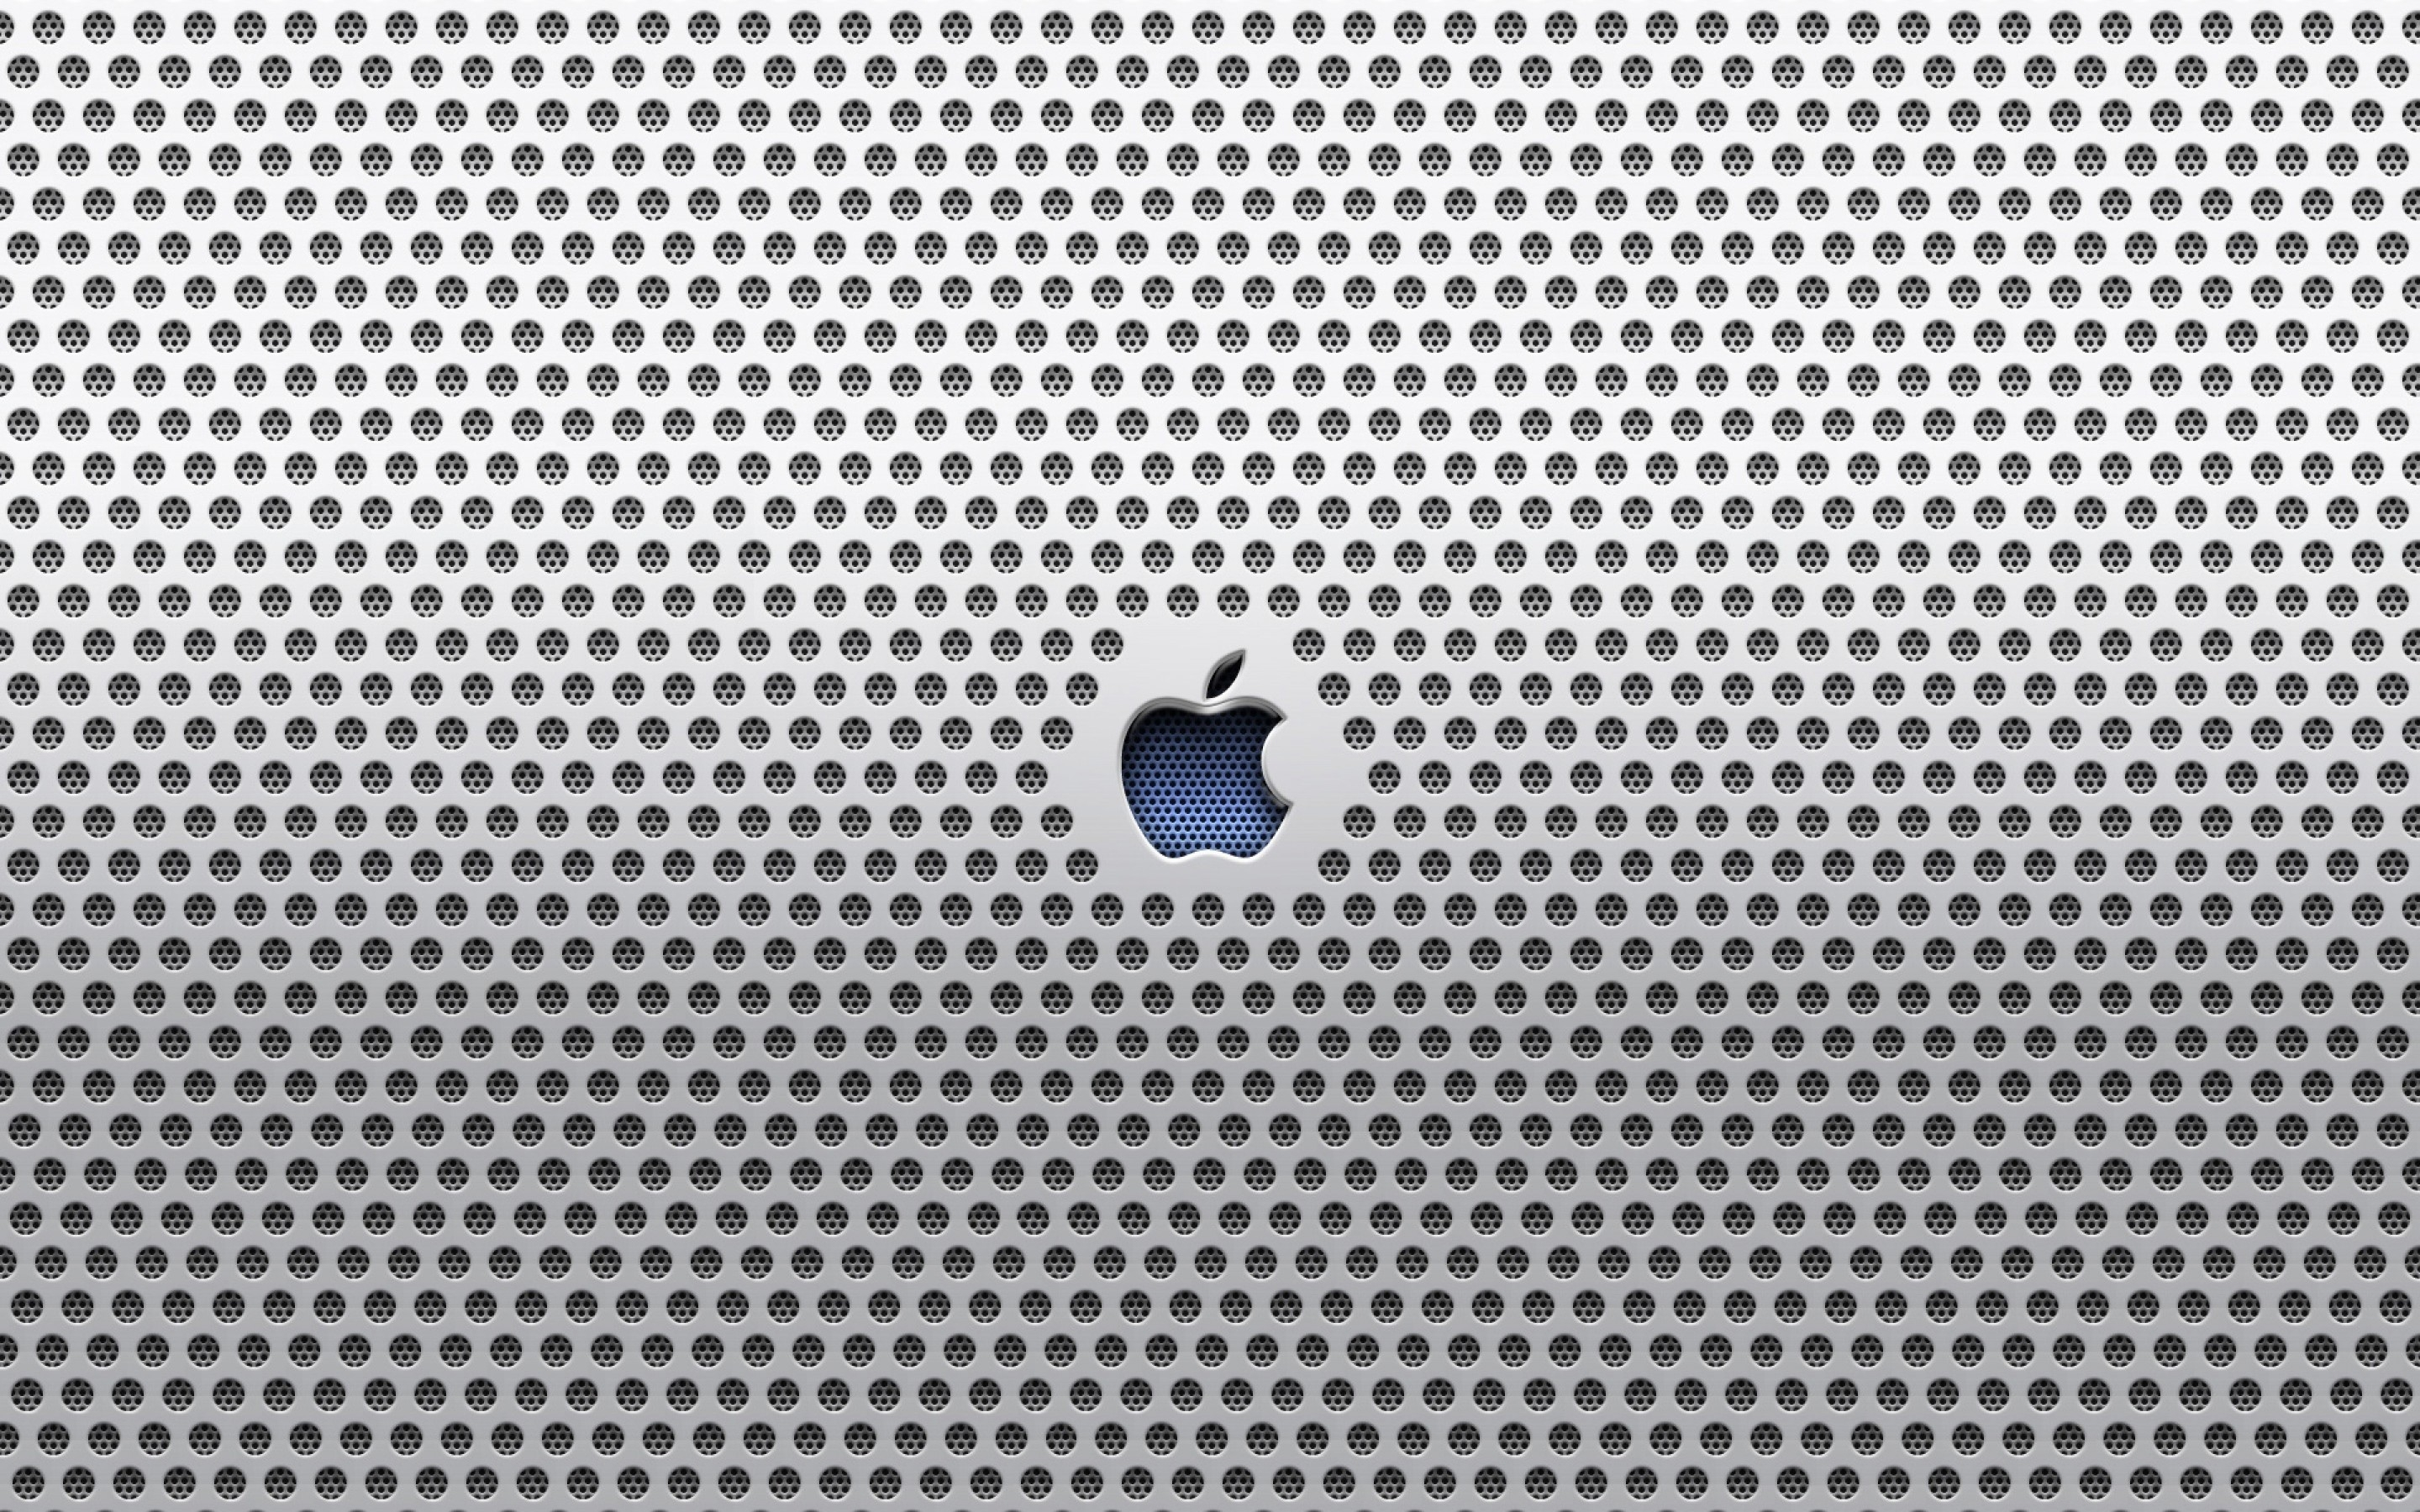 Apple Metal Hd Mac Wallpaper - Apple Hd Wallpaper For Macbook Pro , HD Wallpaper & Backgrounds